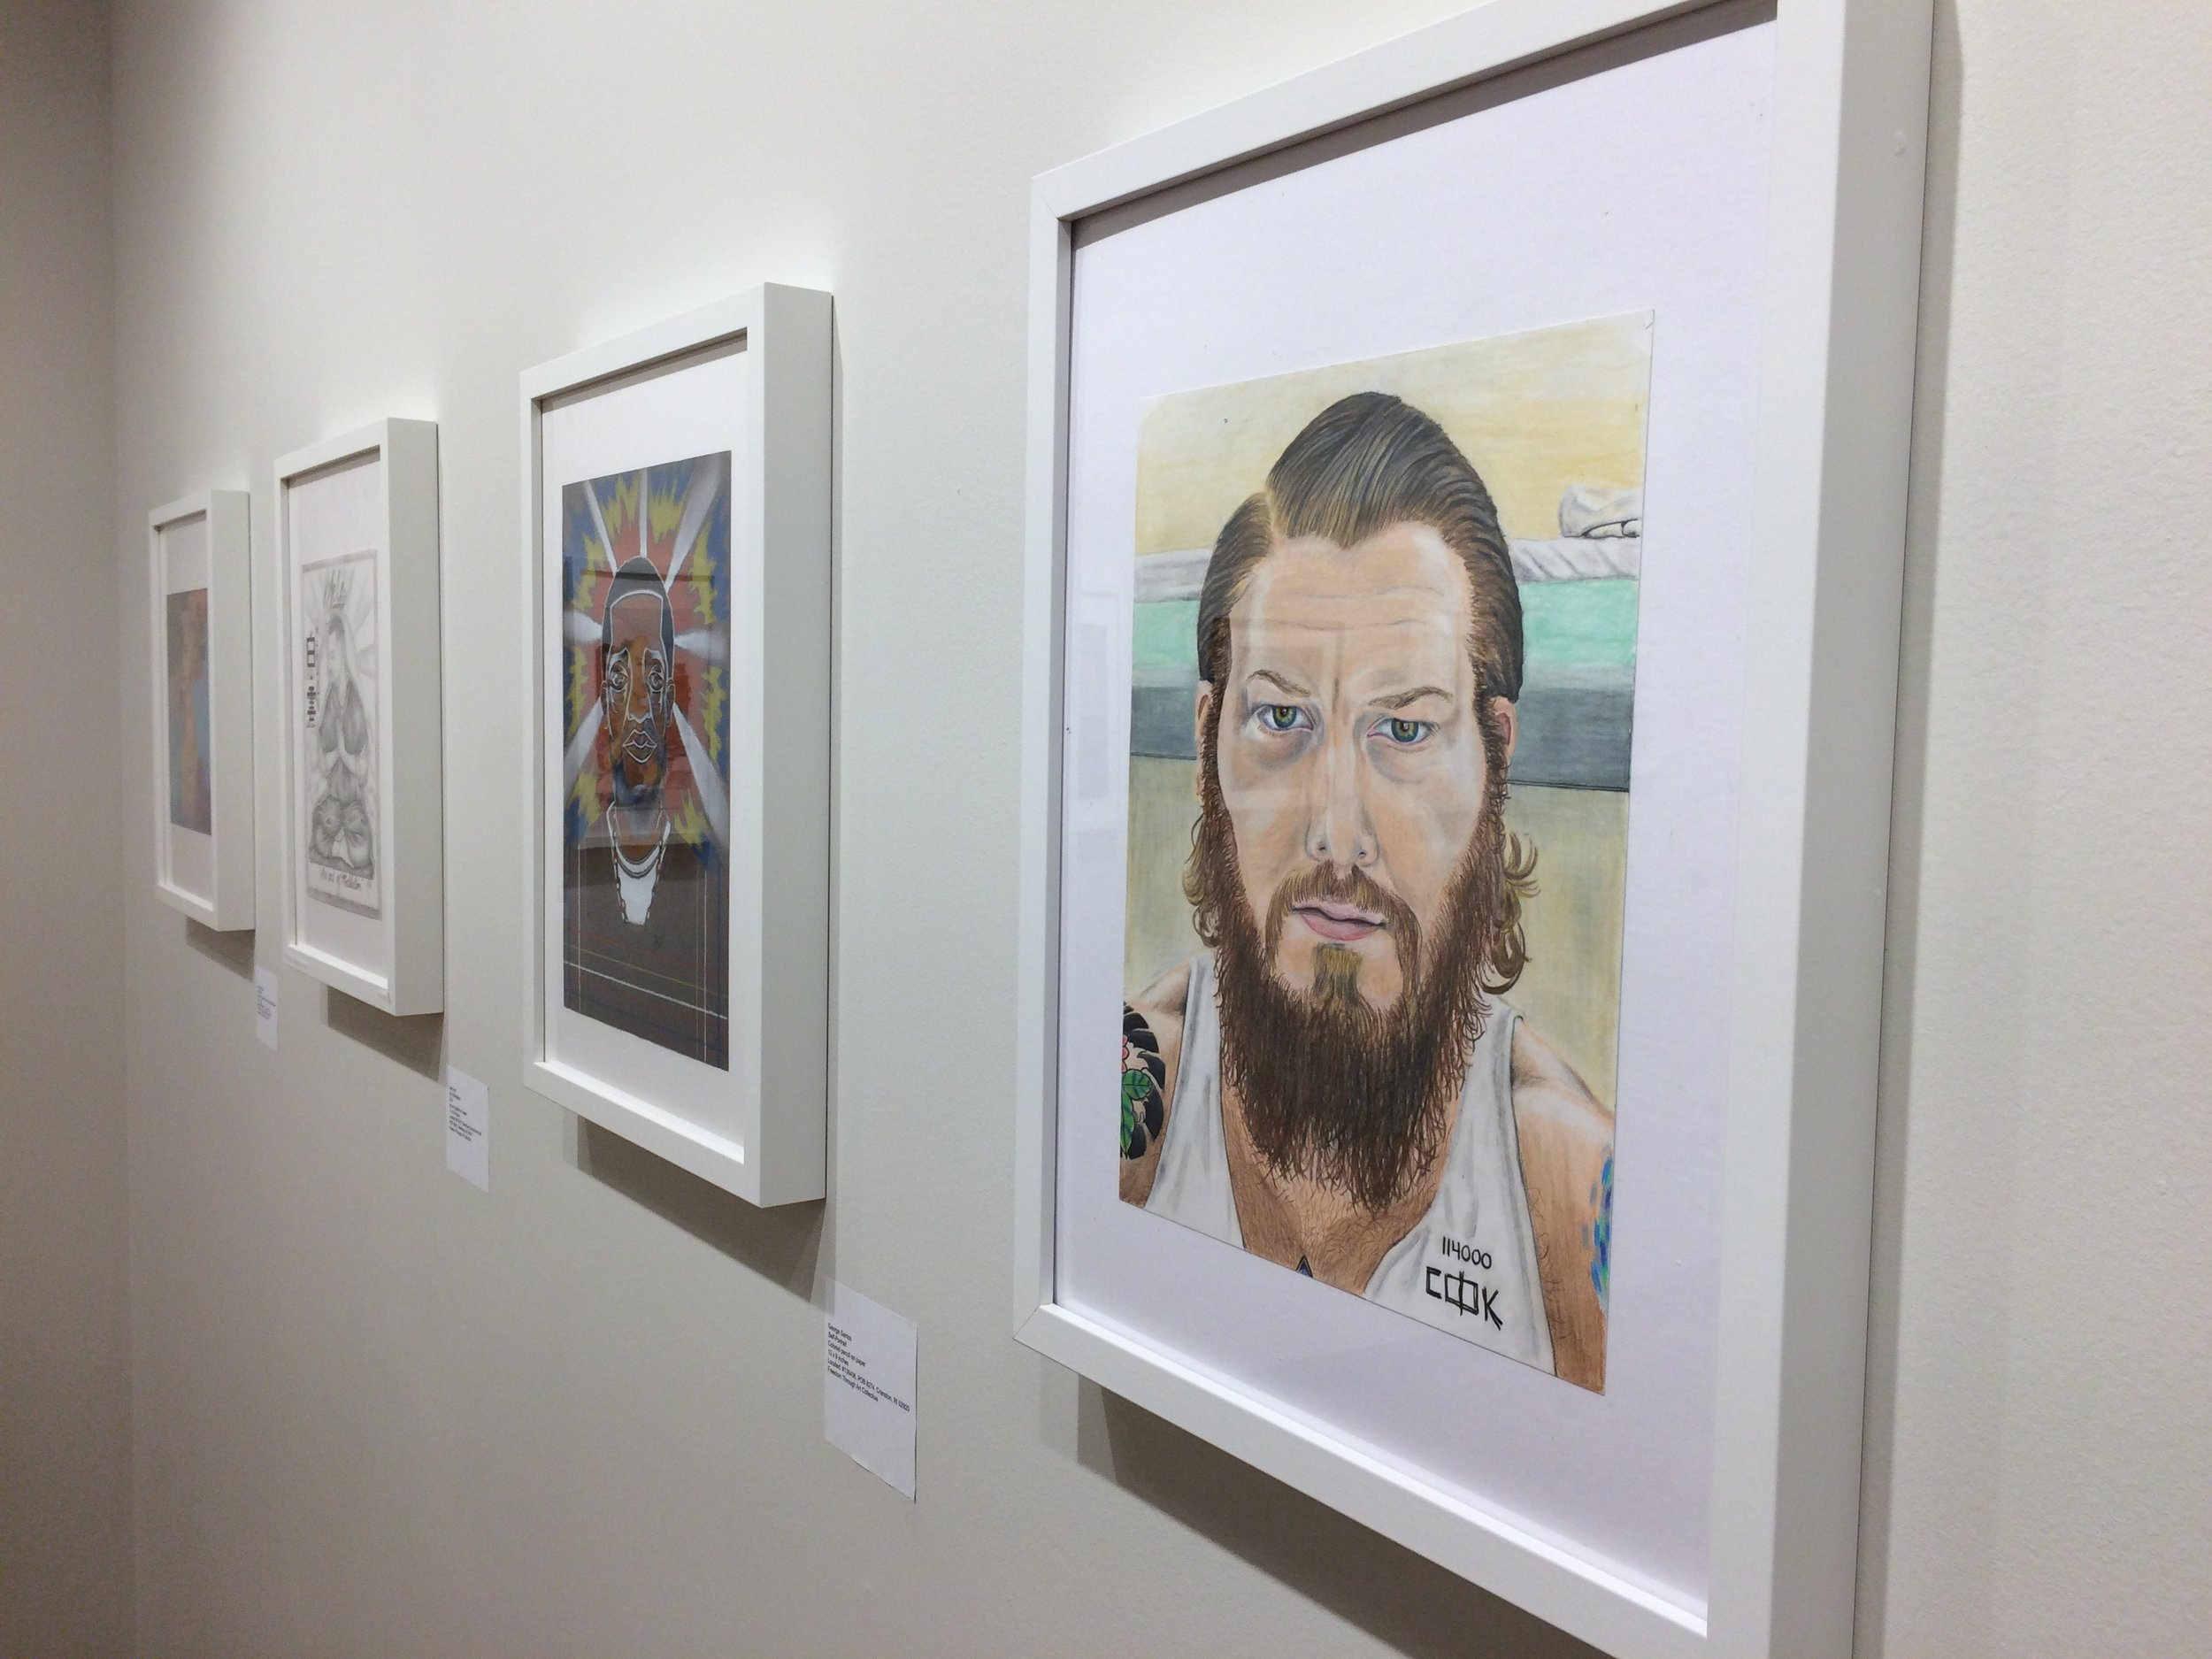 installation view of  Inside/Out: New Perspectives from Incarcerated Artists.